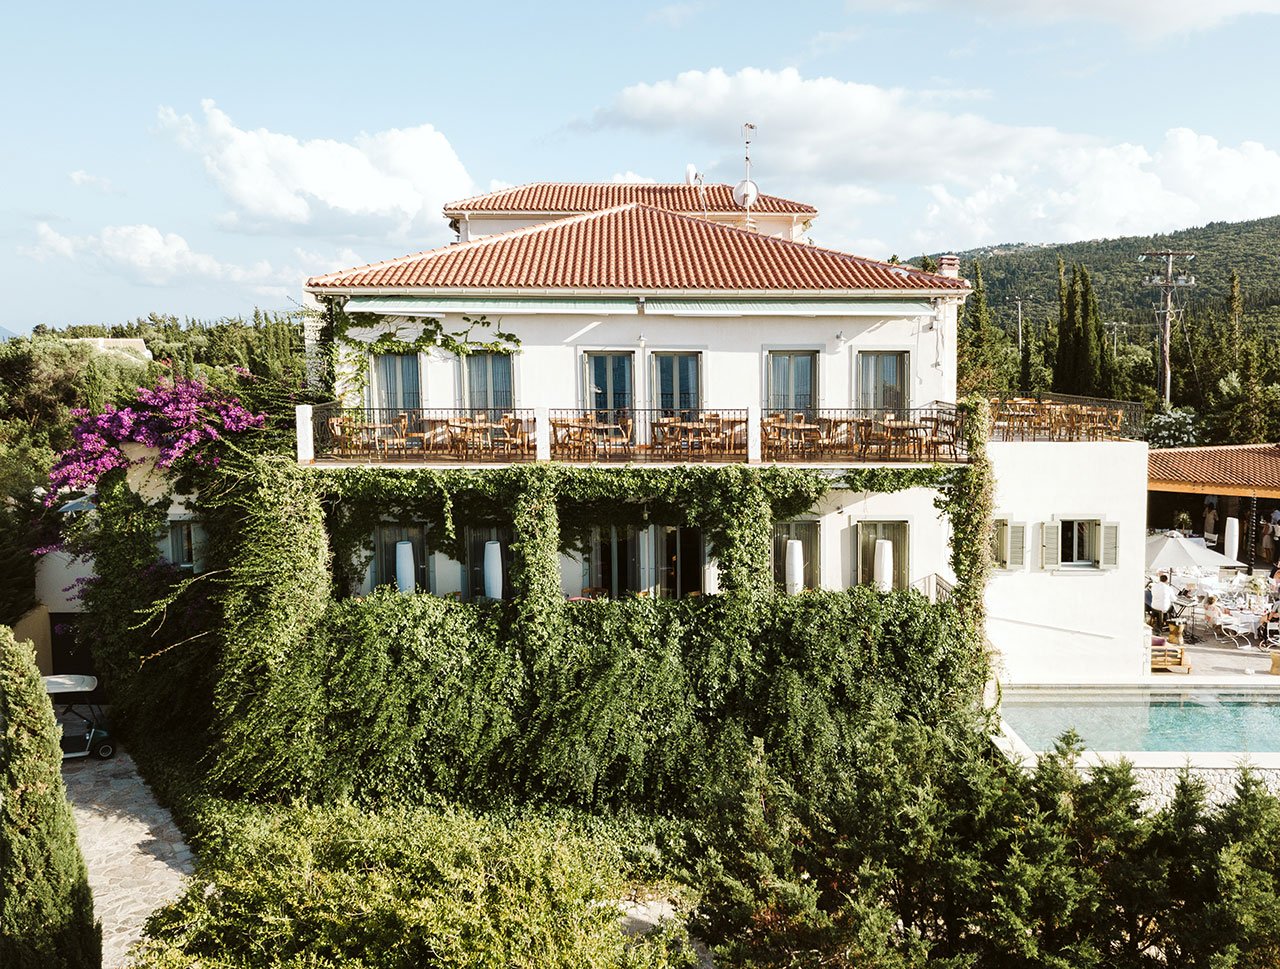 The evergreen gardens envelope the Hotel's cliff-top buildings. © Emelisse Nature Resort | Fiskardo, Kefalonia, Greece.​​​​​​​Photo by Dimitris Skigopoulos.